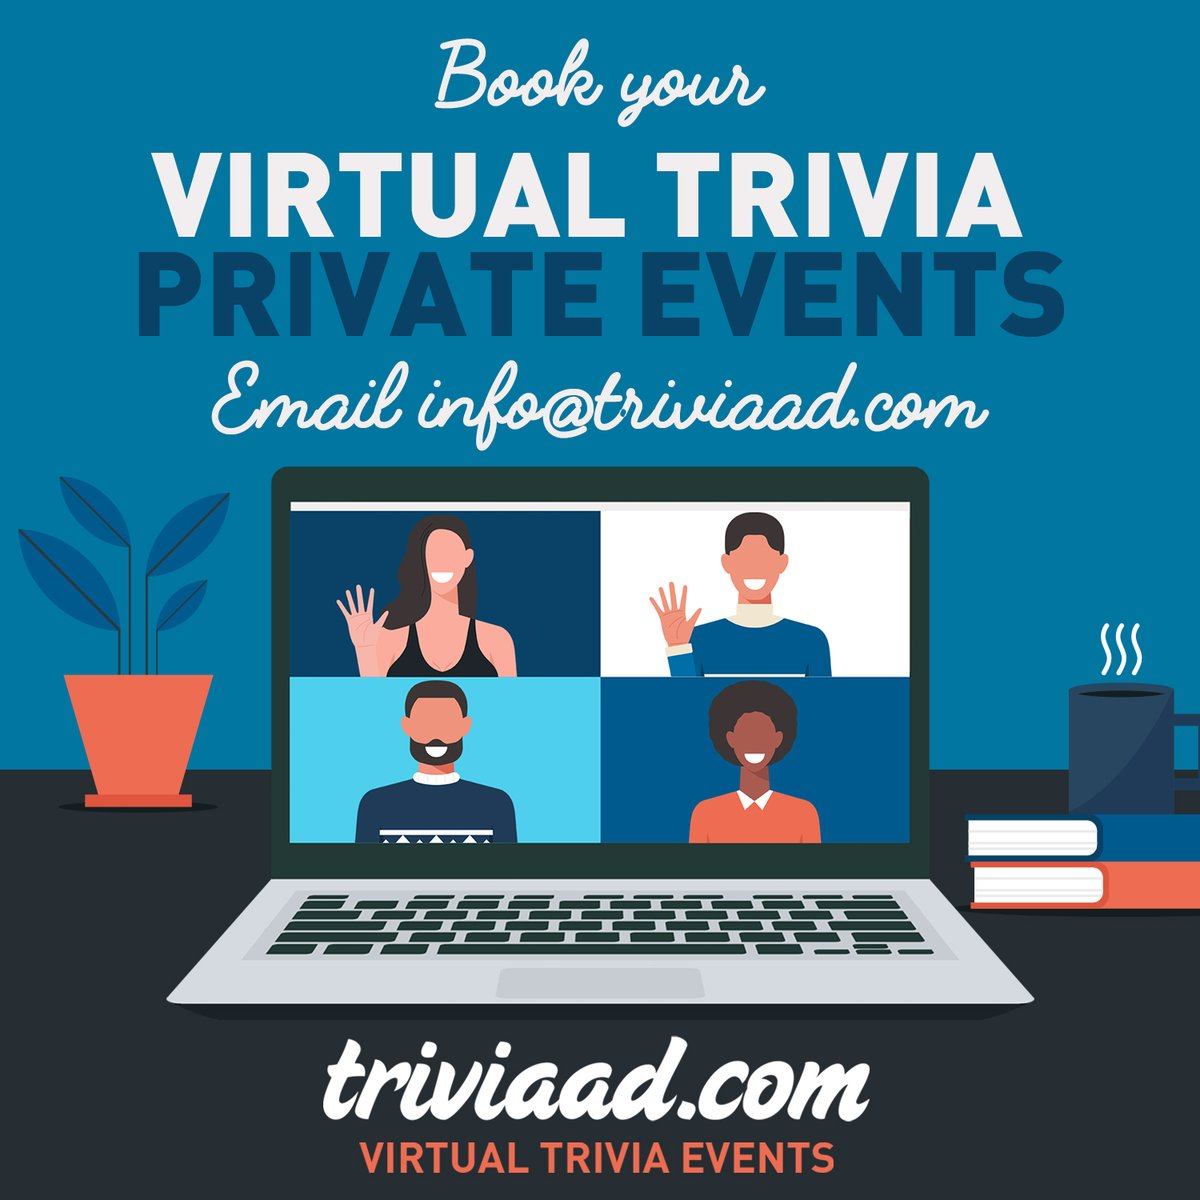 Get your team together with a private, virtual, team building  info@triviaad.com to plan your virtual corporate trivia event today! #Trivia #TeamBuilding #VirtualEvents #HappyHour